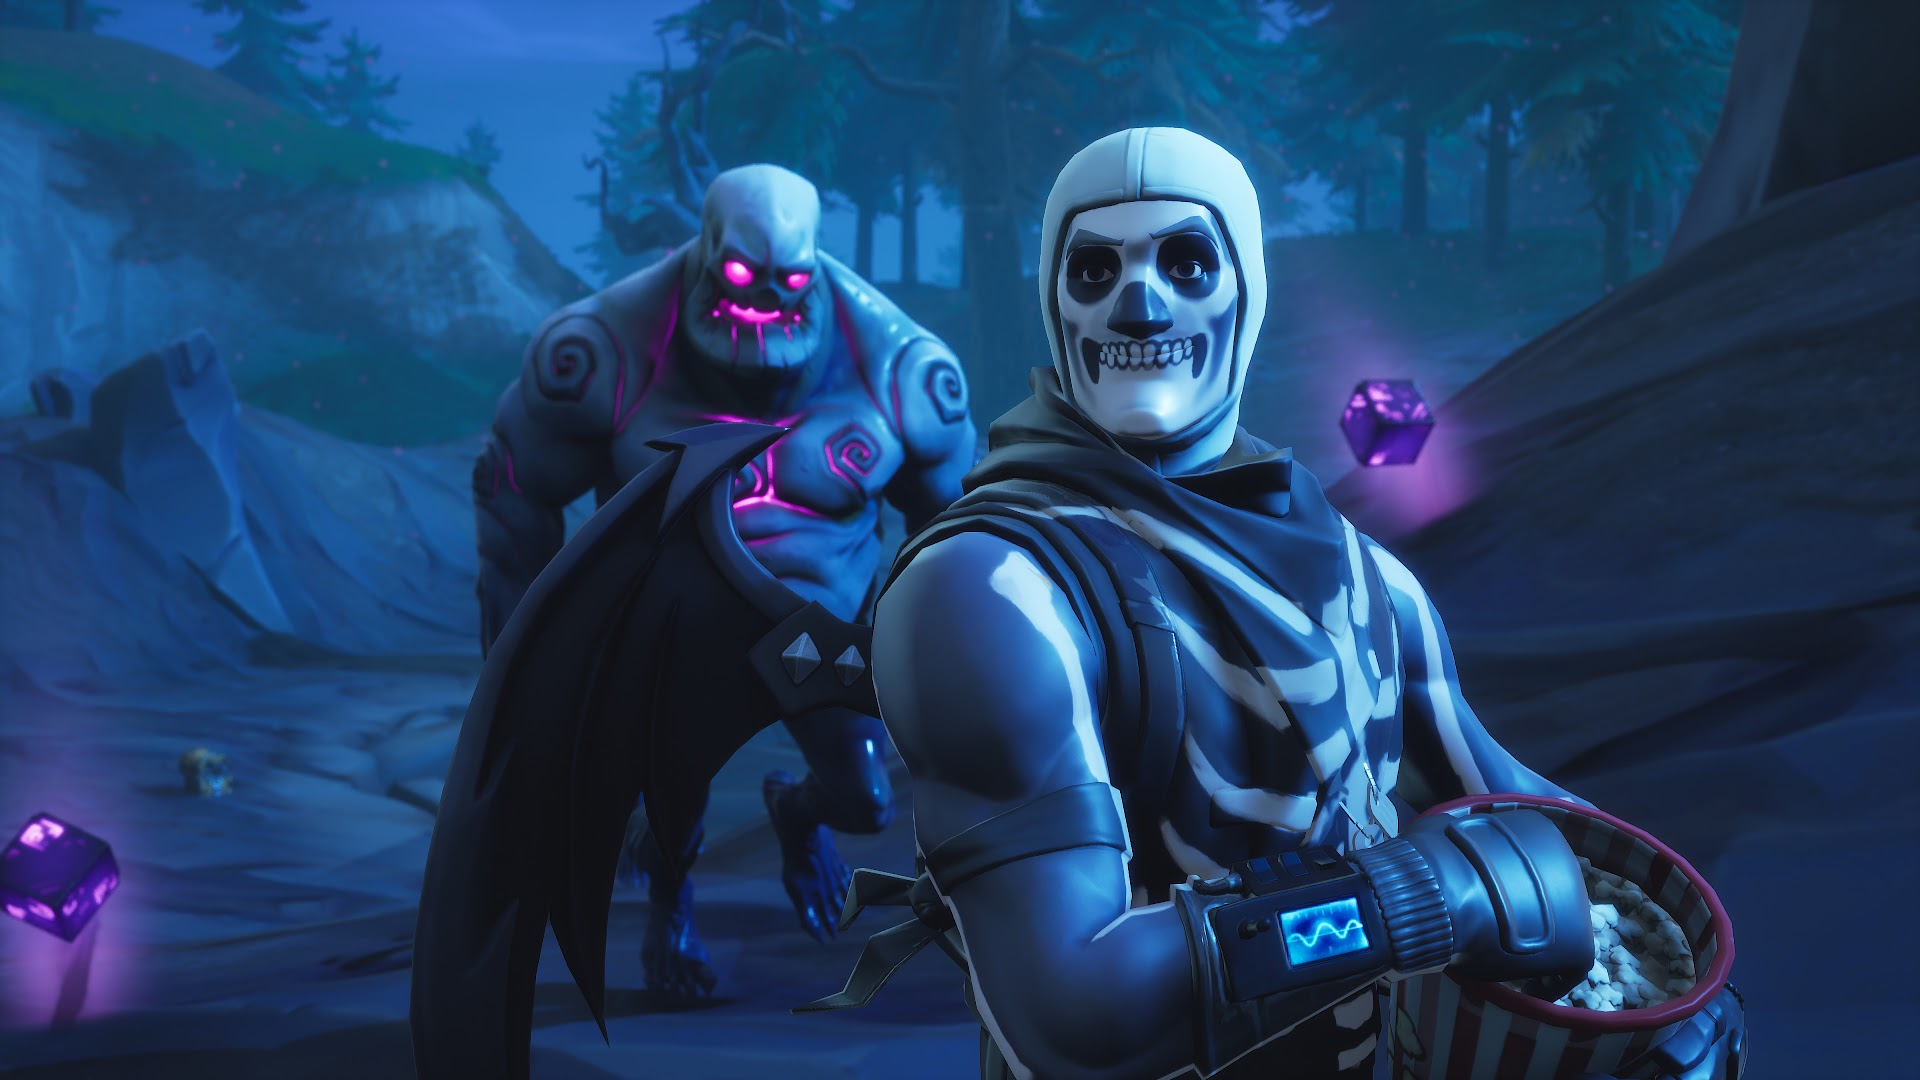 Fortnite Sniper 2560x1440 2048x1152 Wallpaper Www Imagenesmy Com